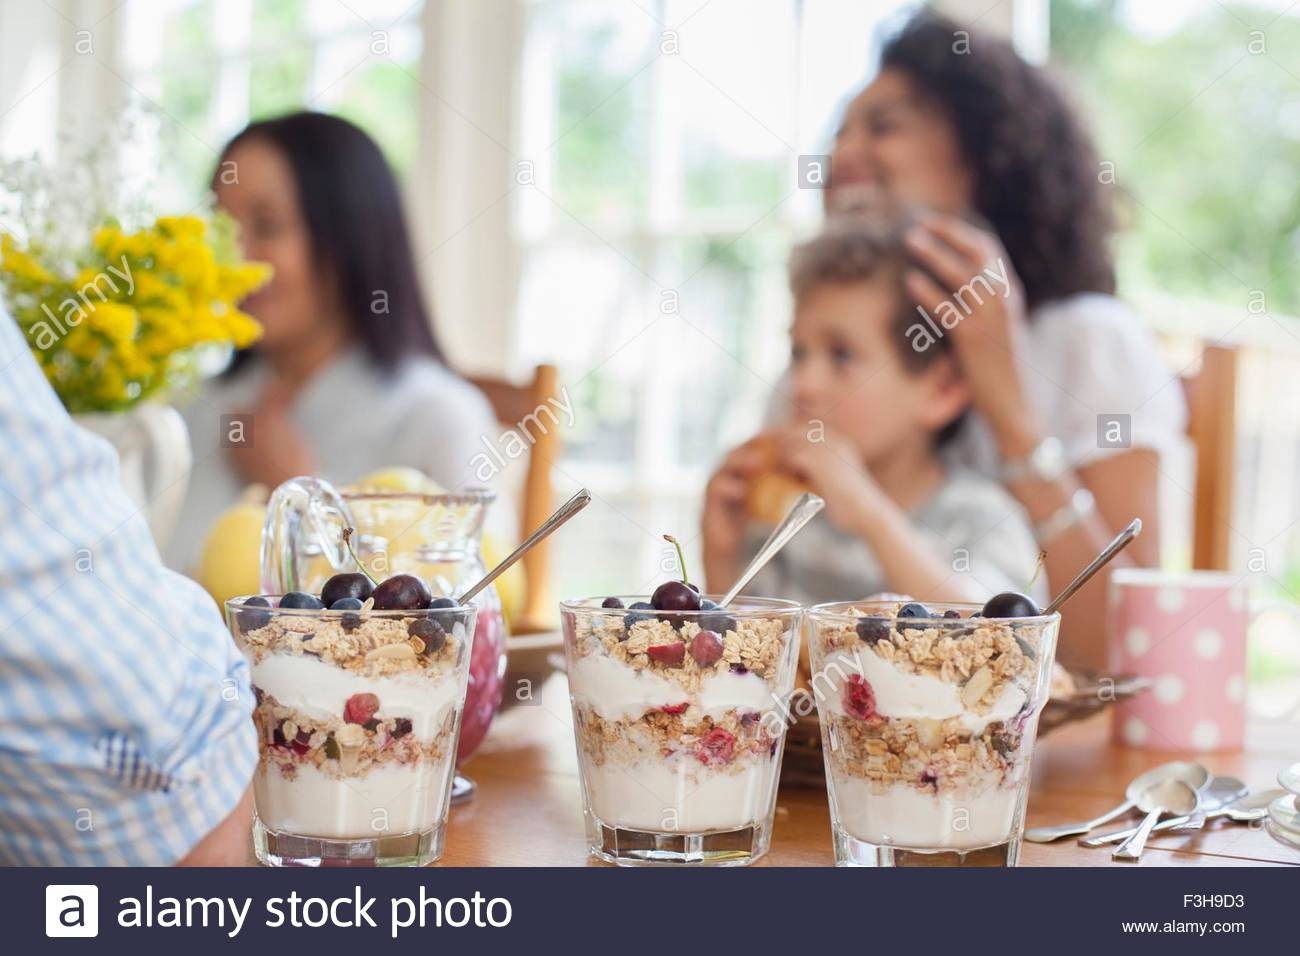 Family enjoying repas ensemble, l'accent sur les desserts en premier plan Photo Stock